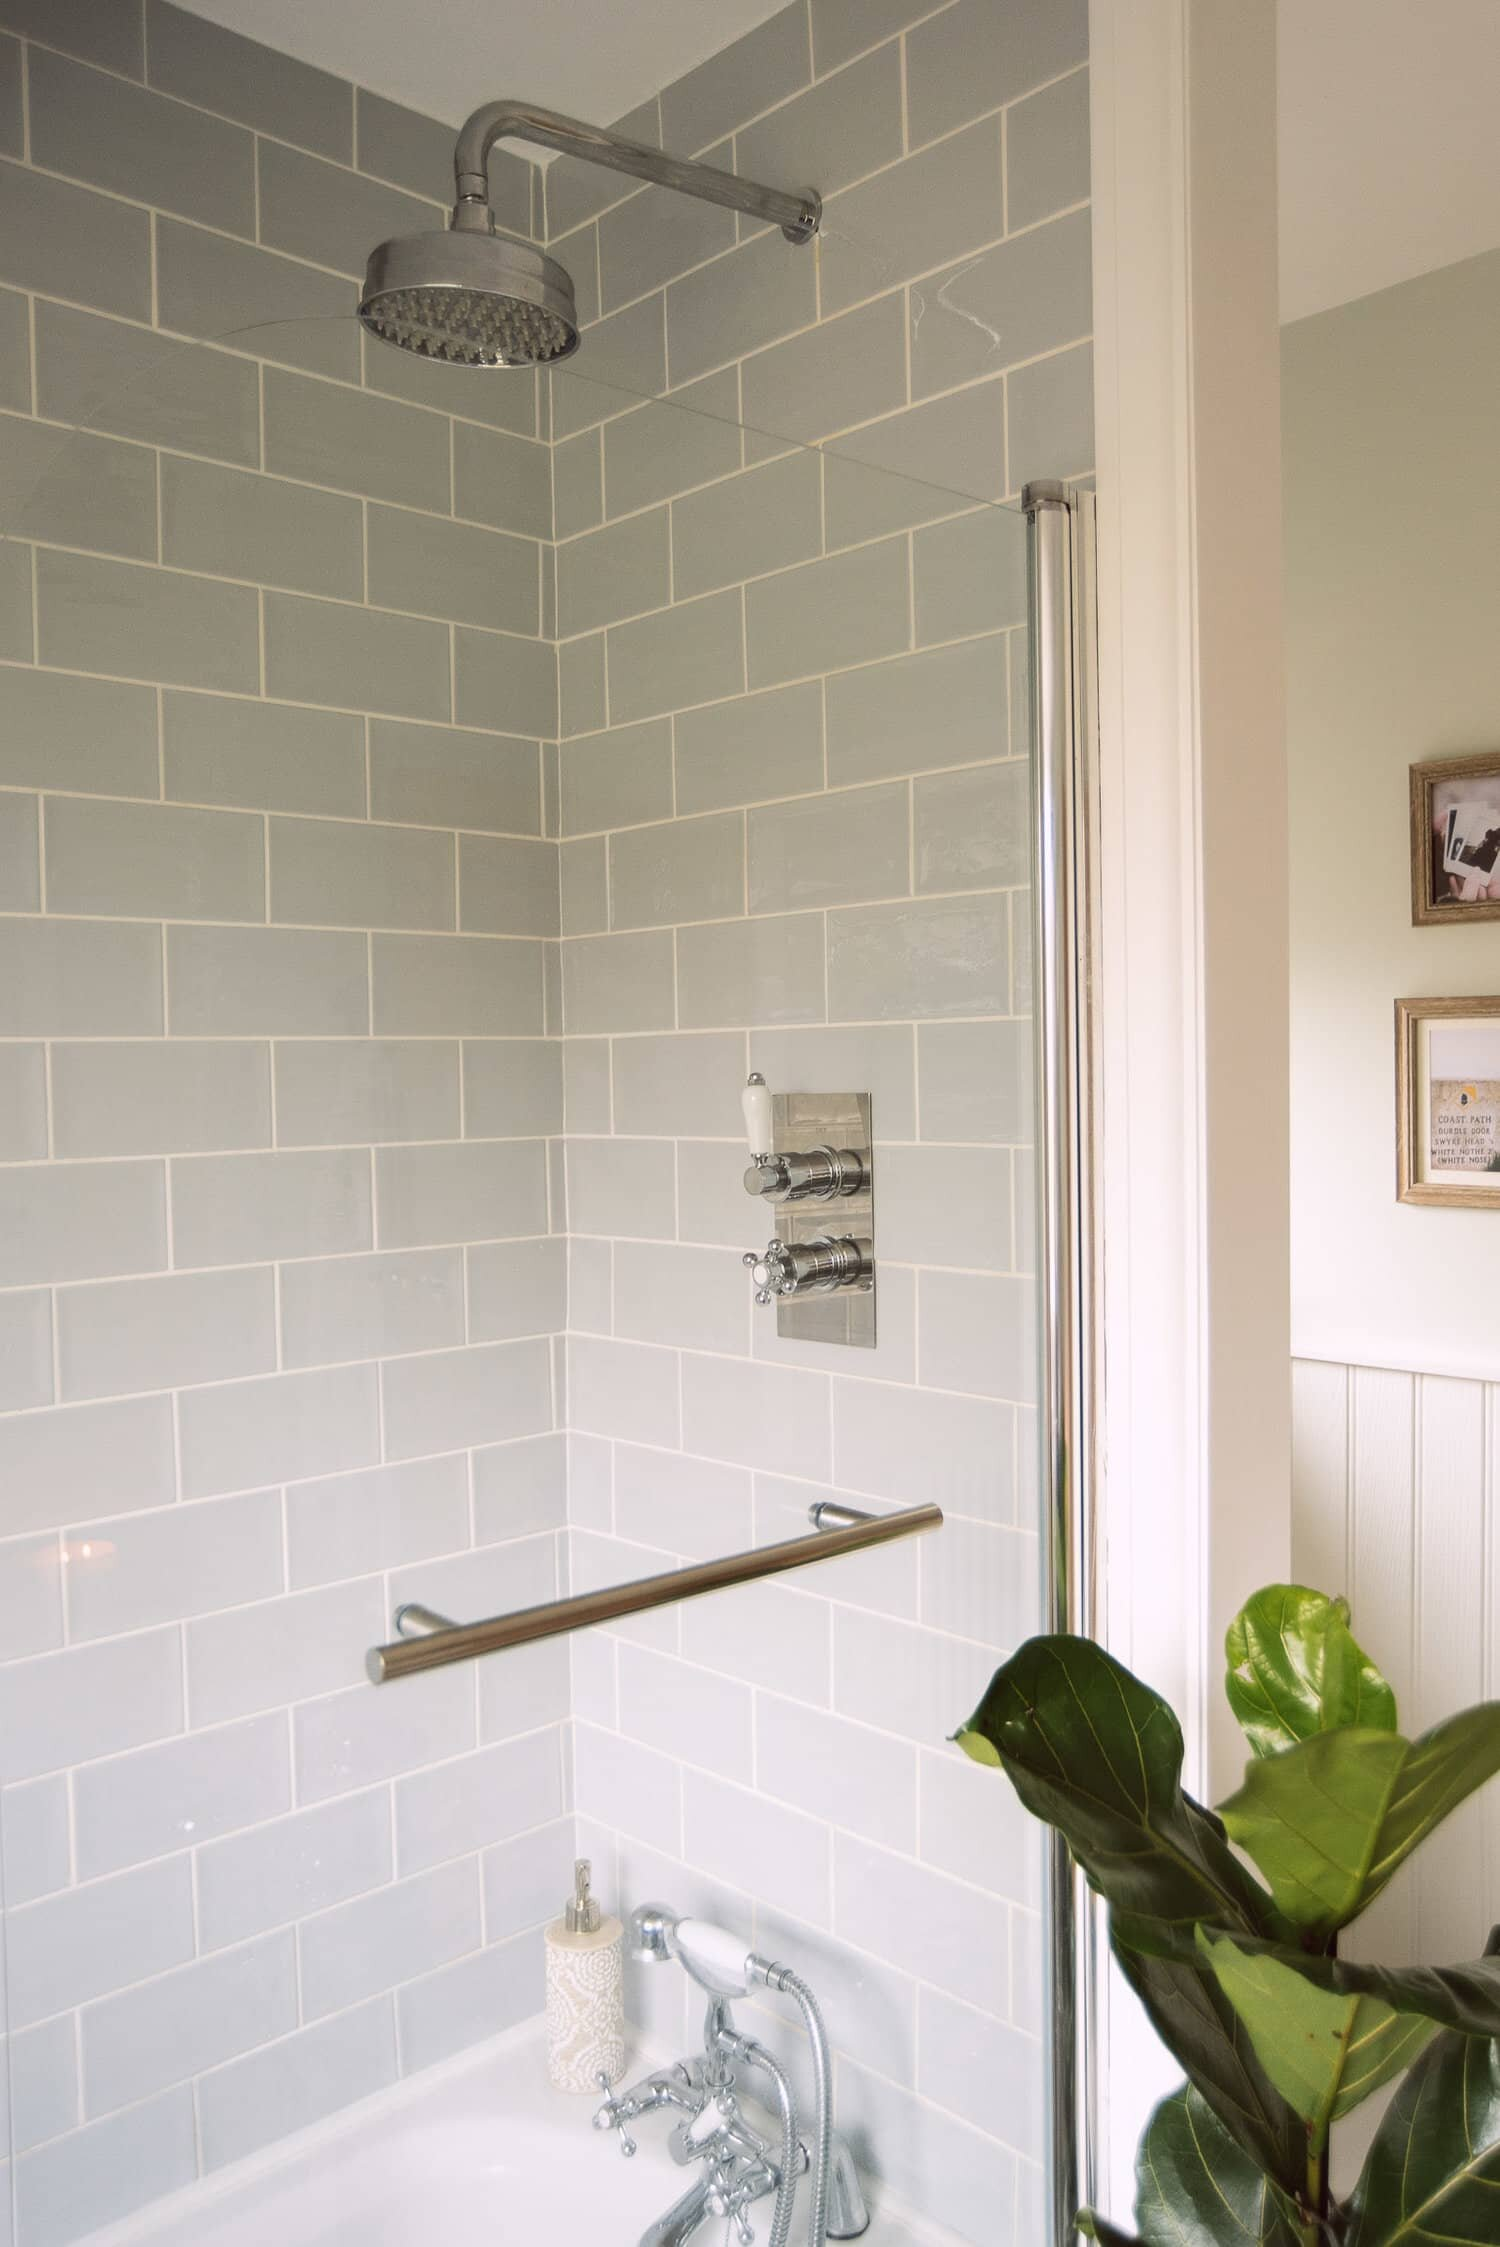 Our Bathroom Renovation Costs And How We Budgeted Fifi Mcgee